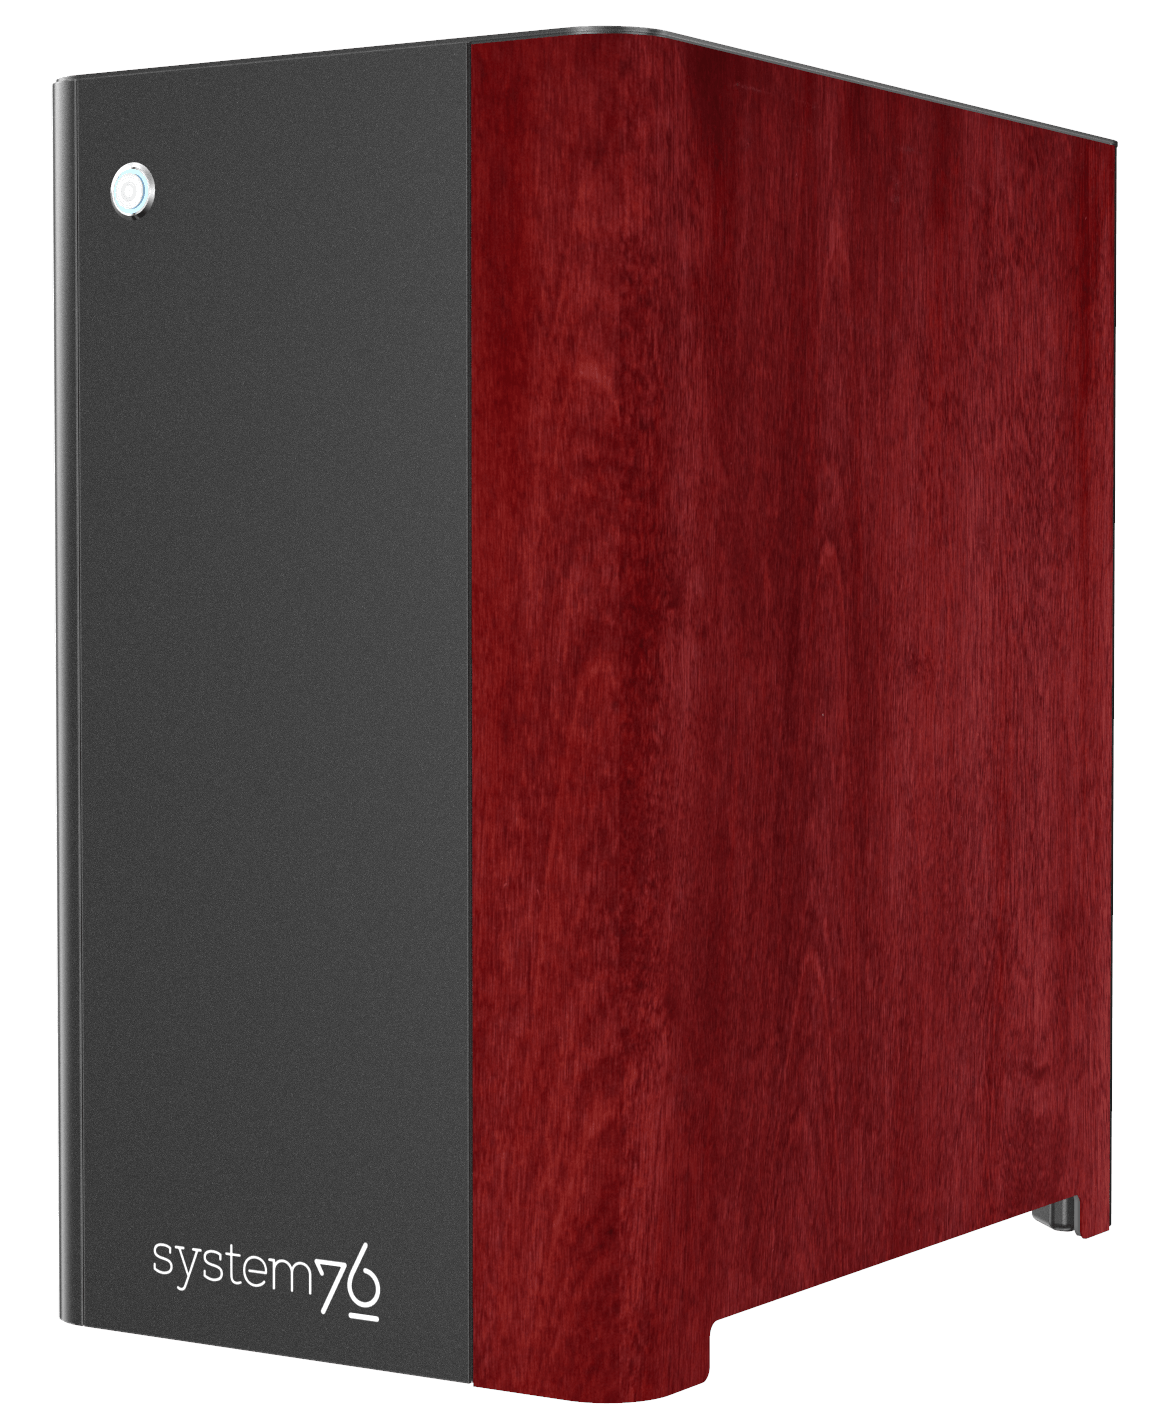 Side view of Thelio Major's Martian Red-stained birch wood veneer.